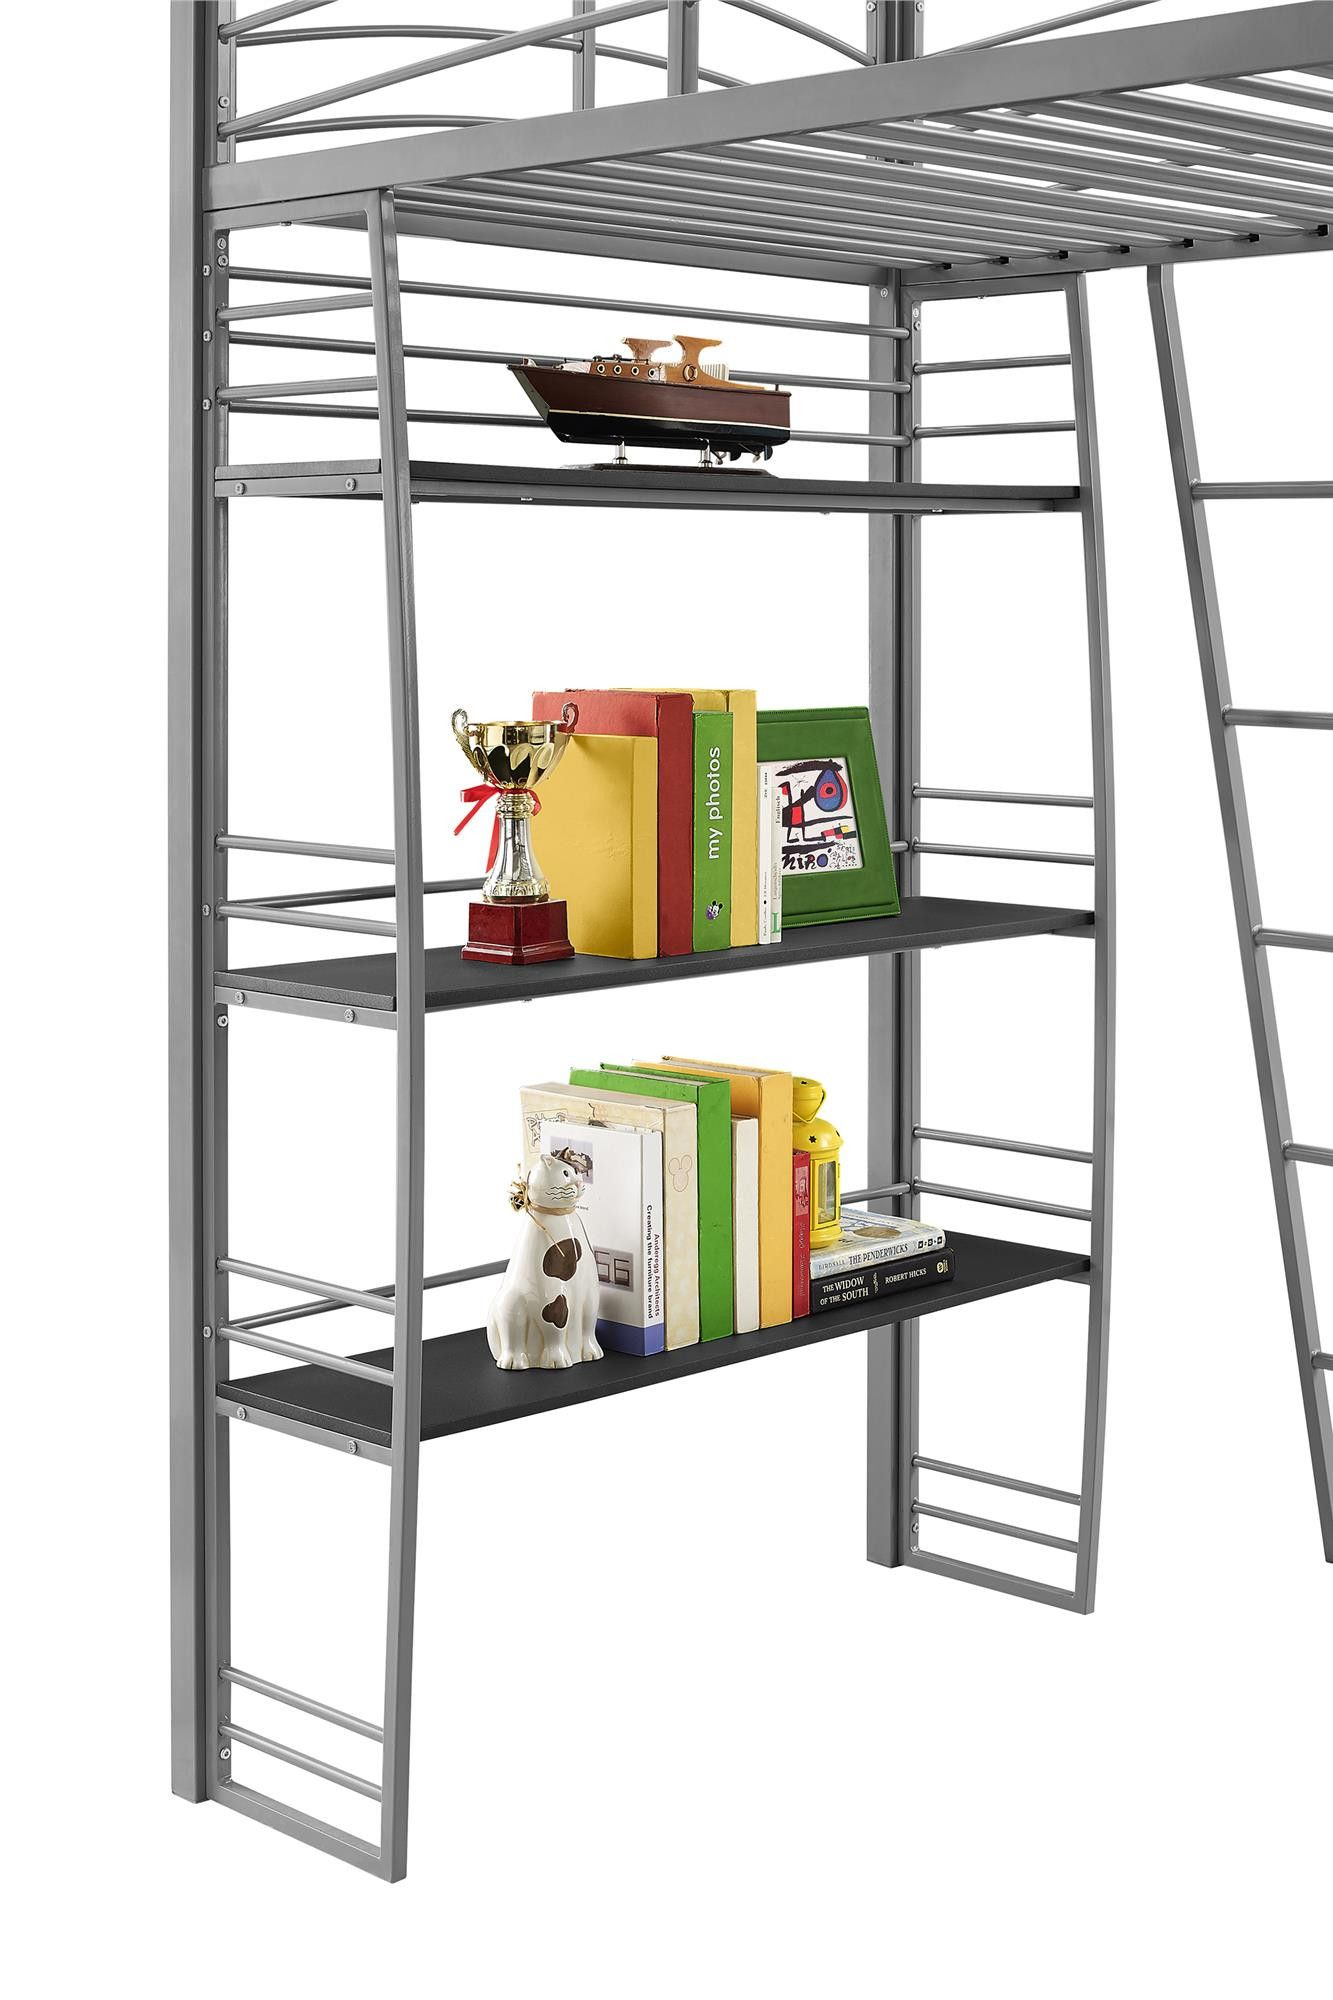 Bunk Bed Replacement Ladder Los Angeles 2021 In 2020 Loft Bed Loft Bunk Beds Girls Bunk Beds